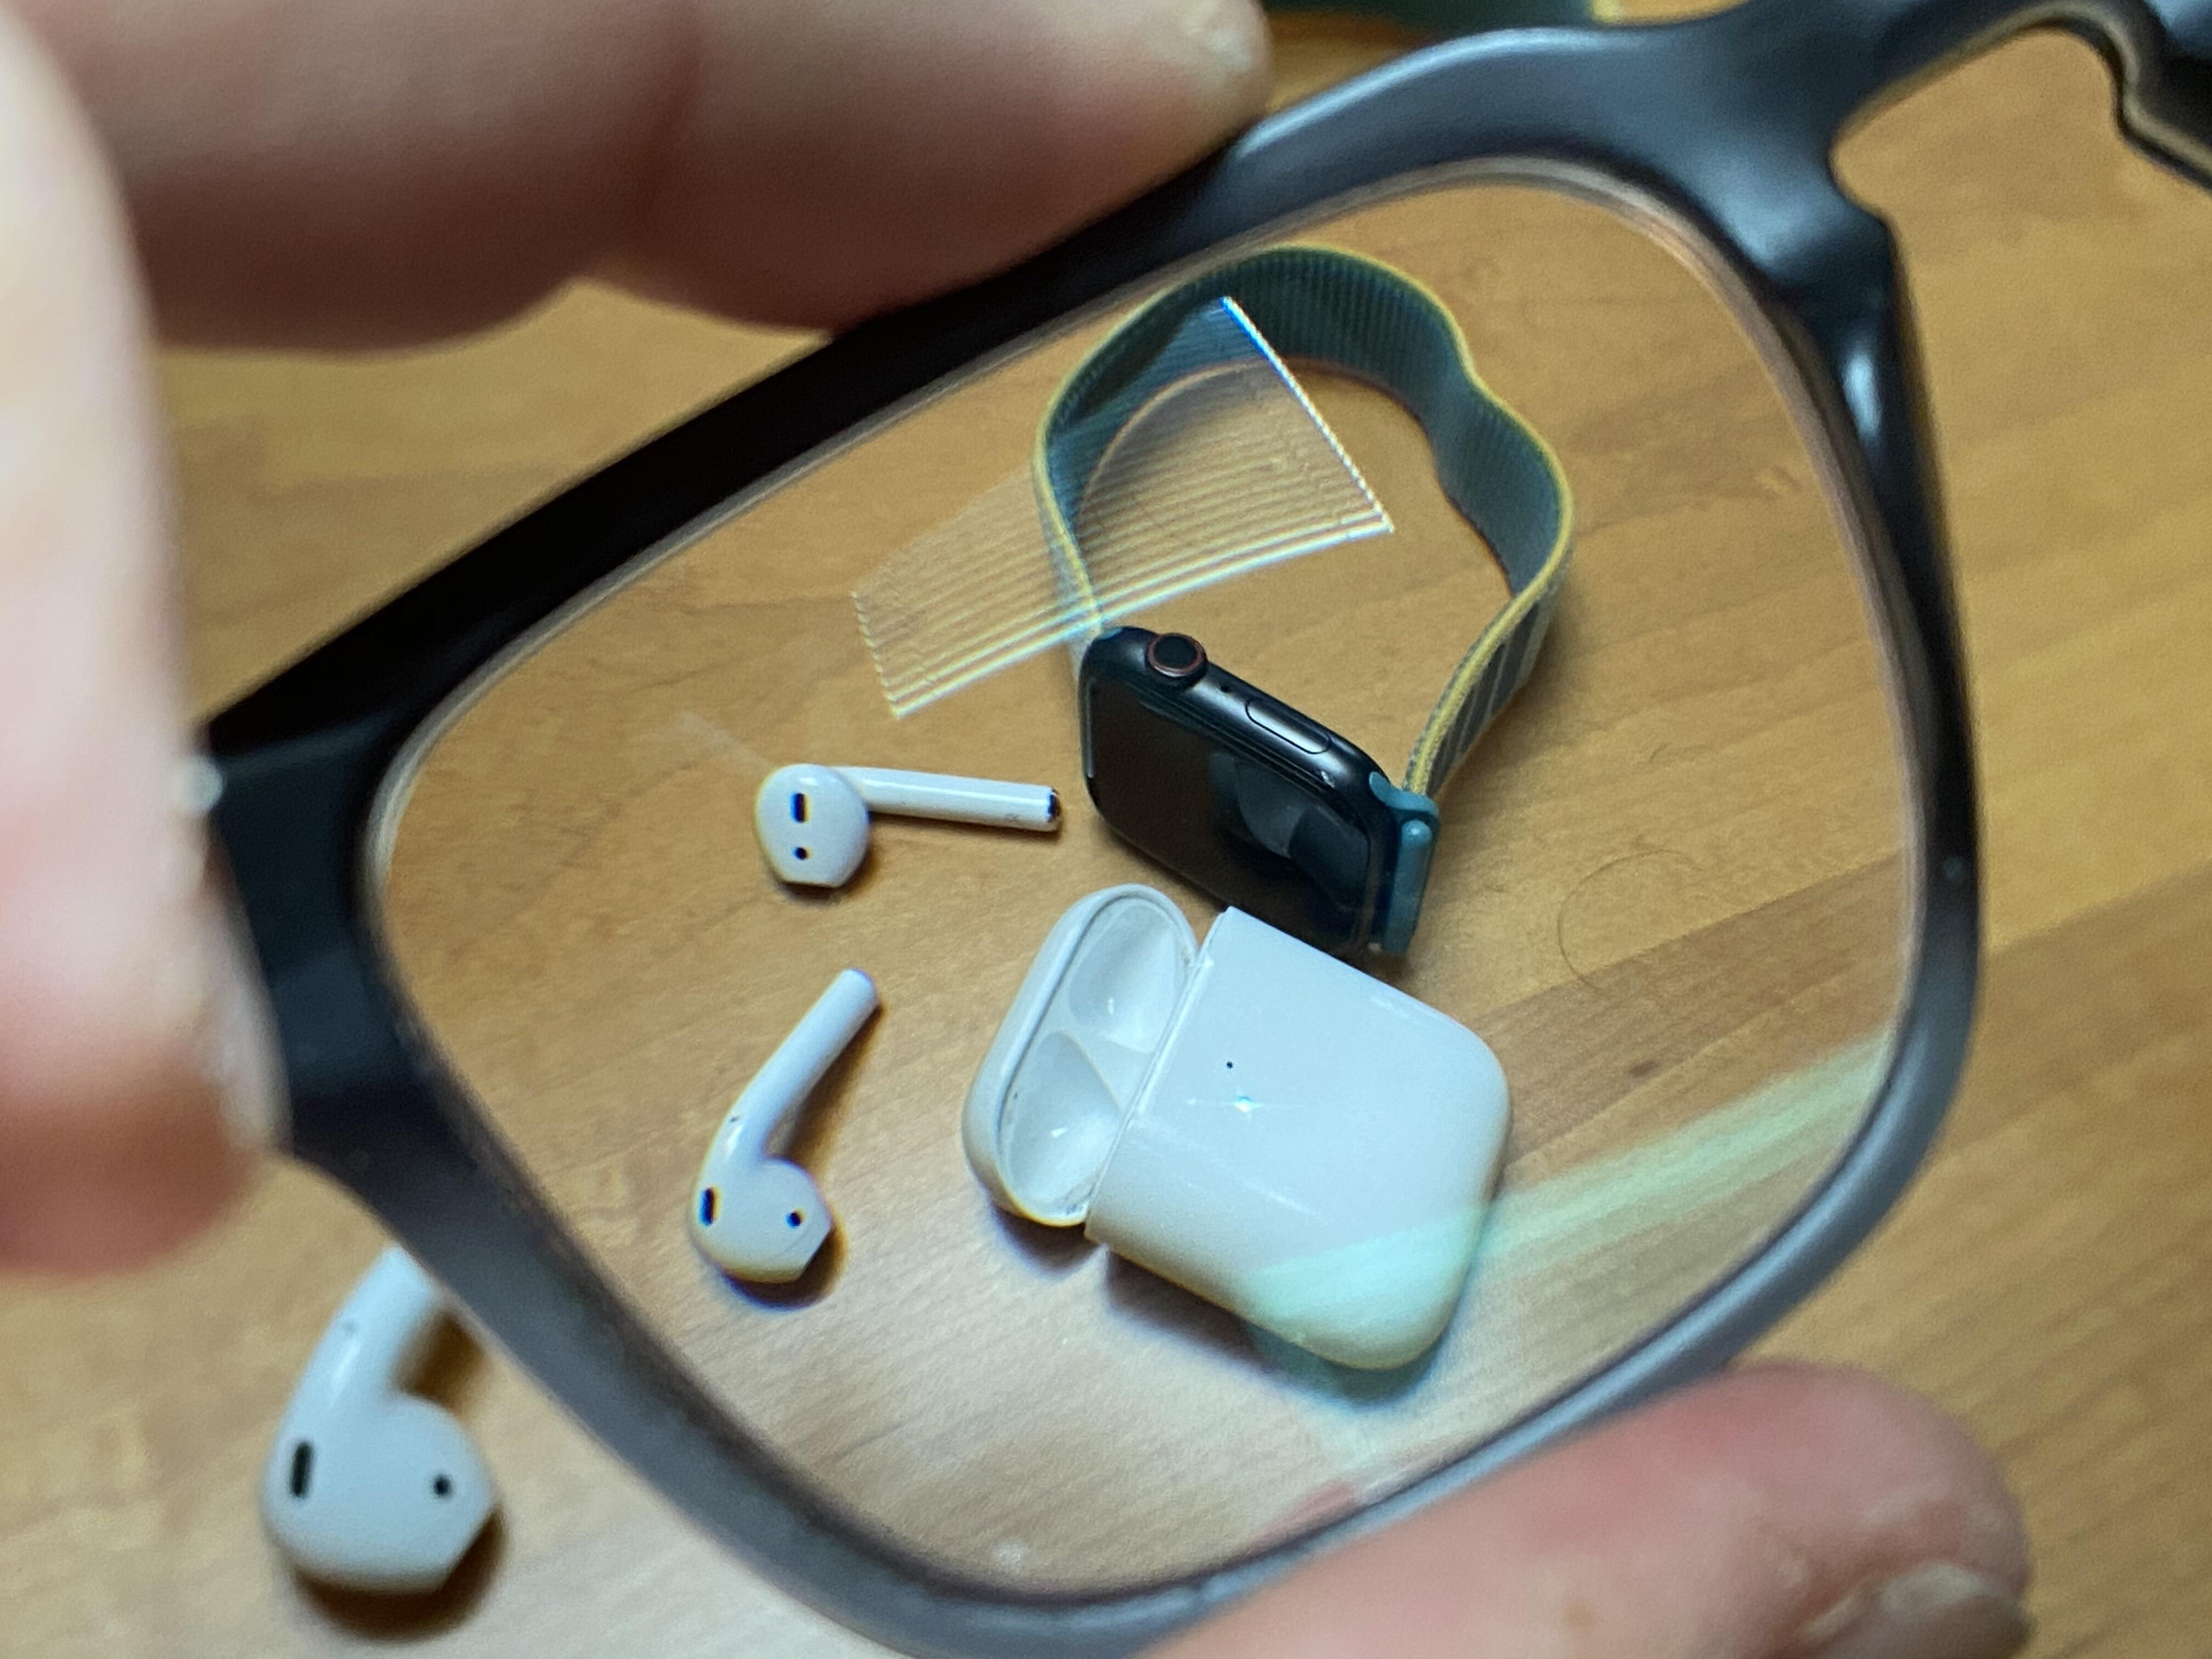 <p>Taking a look at Apple's other wearable devices could point to where Apple Glasses are heading.</p>